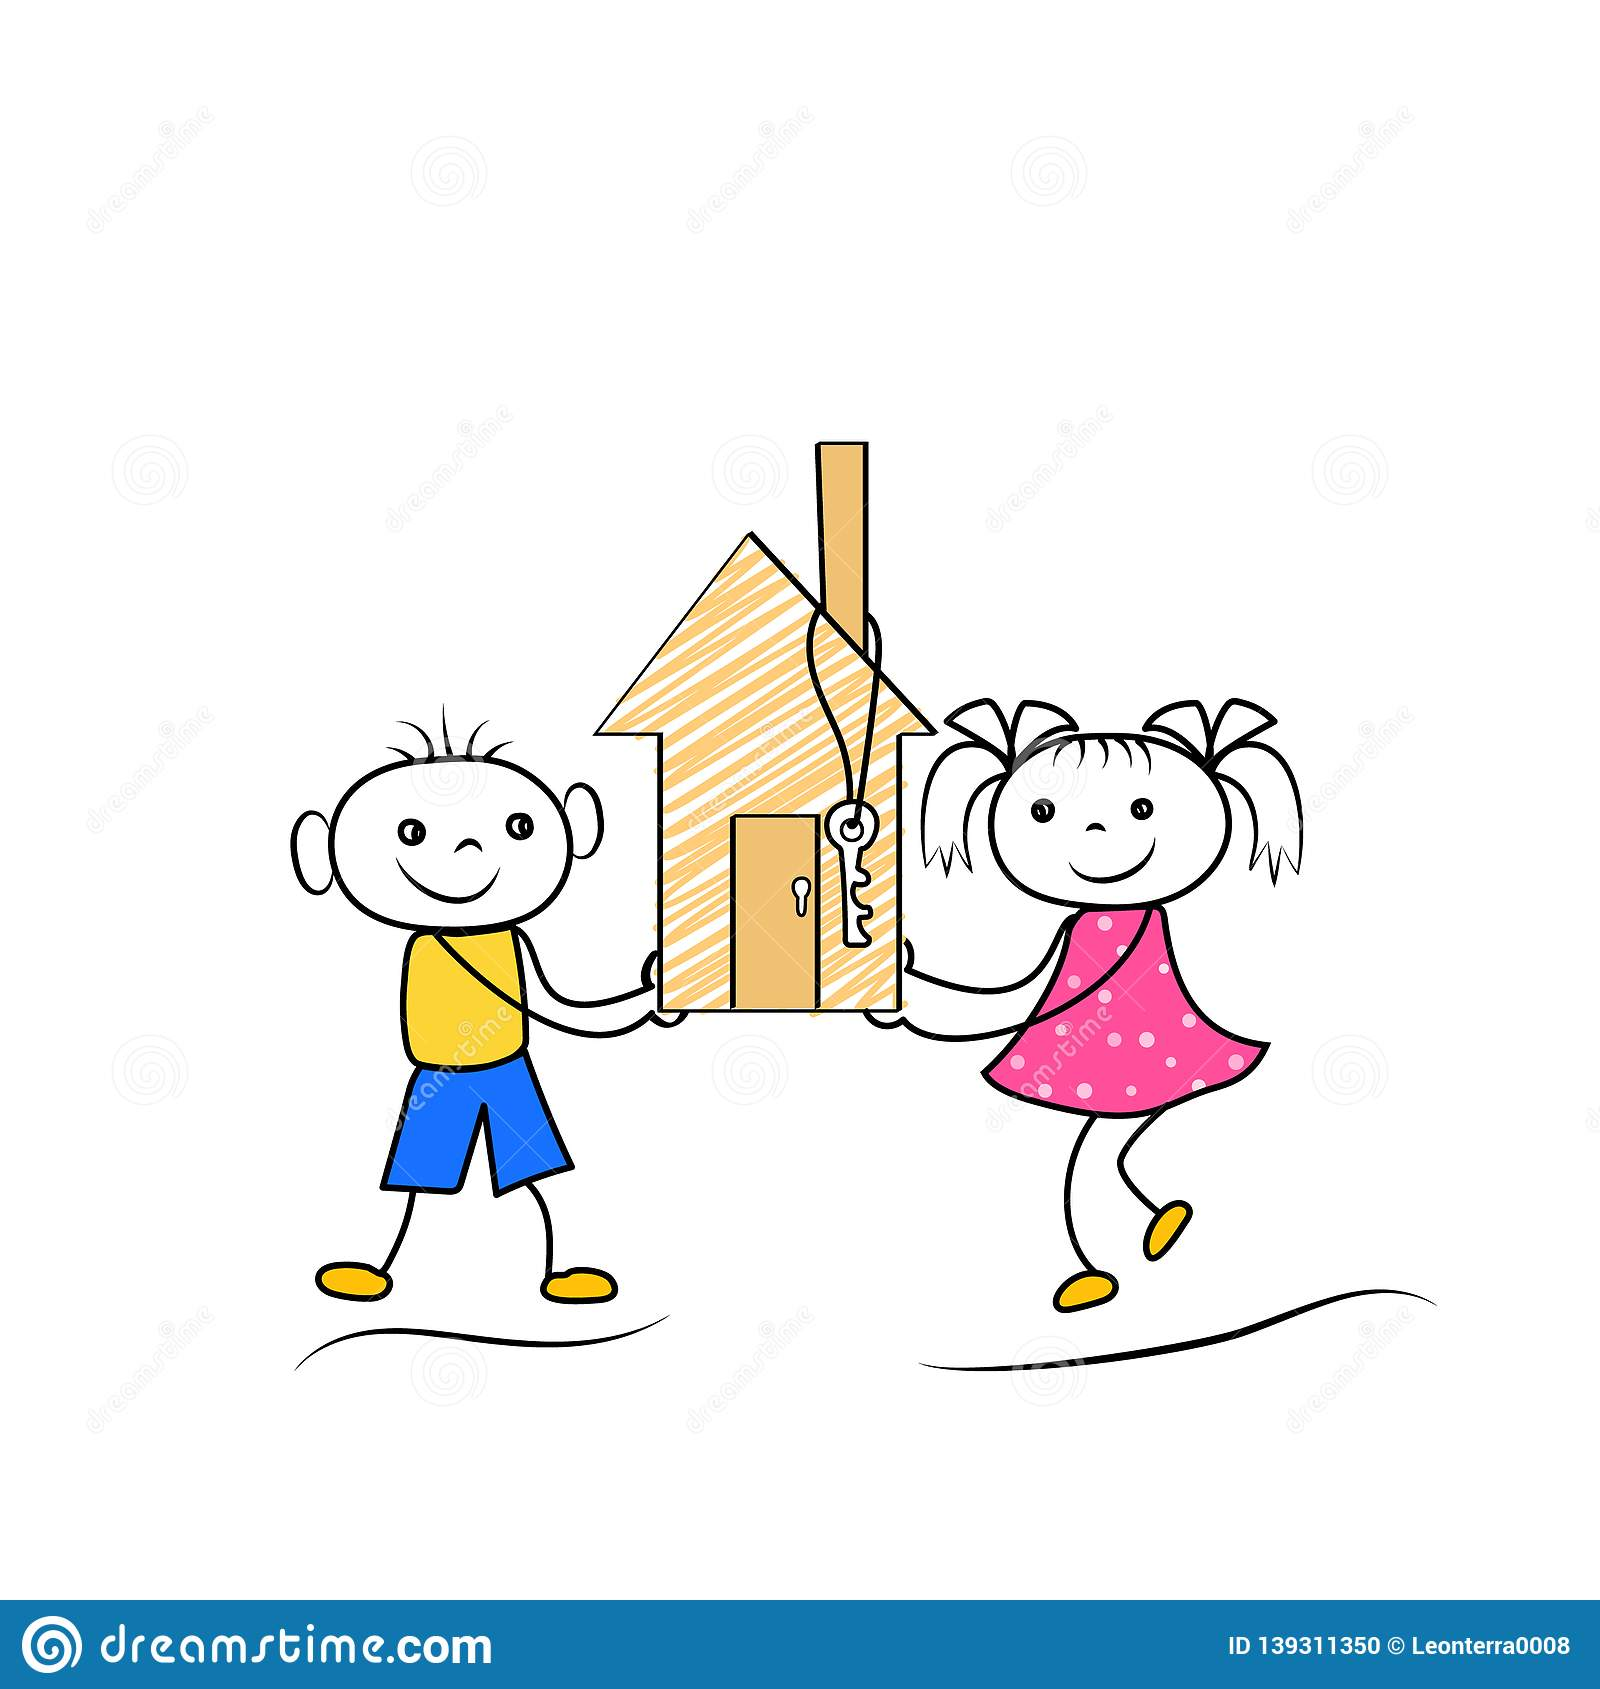 Cartoon Stickman Figures Of Boy And Girl Buying Or Moving To New House Stock Illustration Illustration Of Landlord Condo 139311350